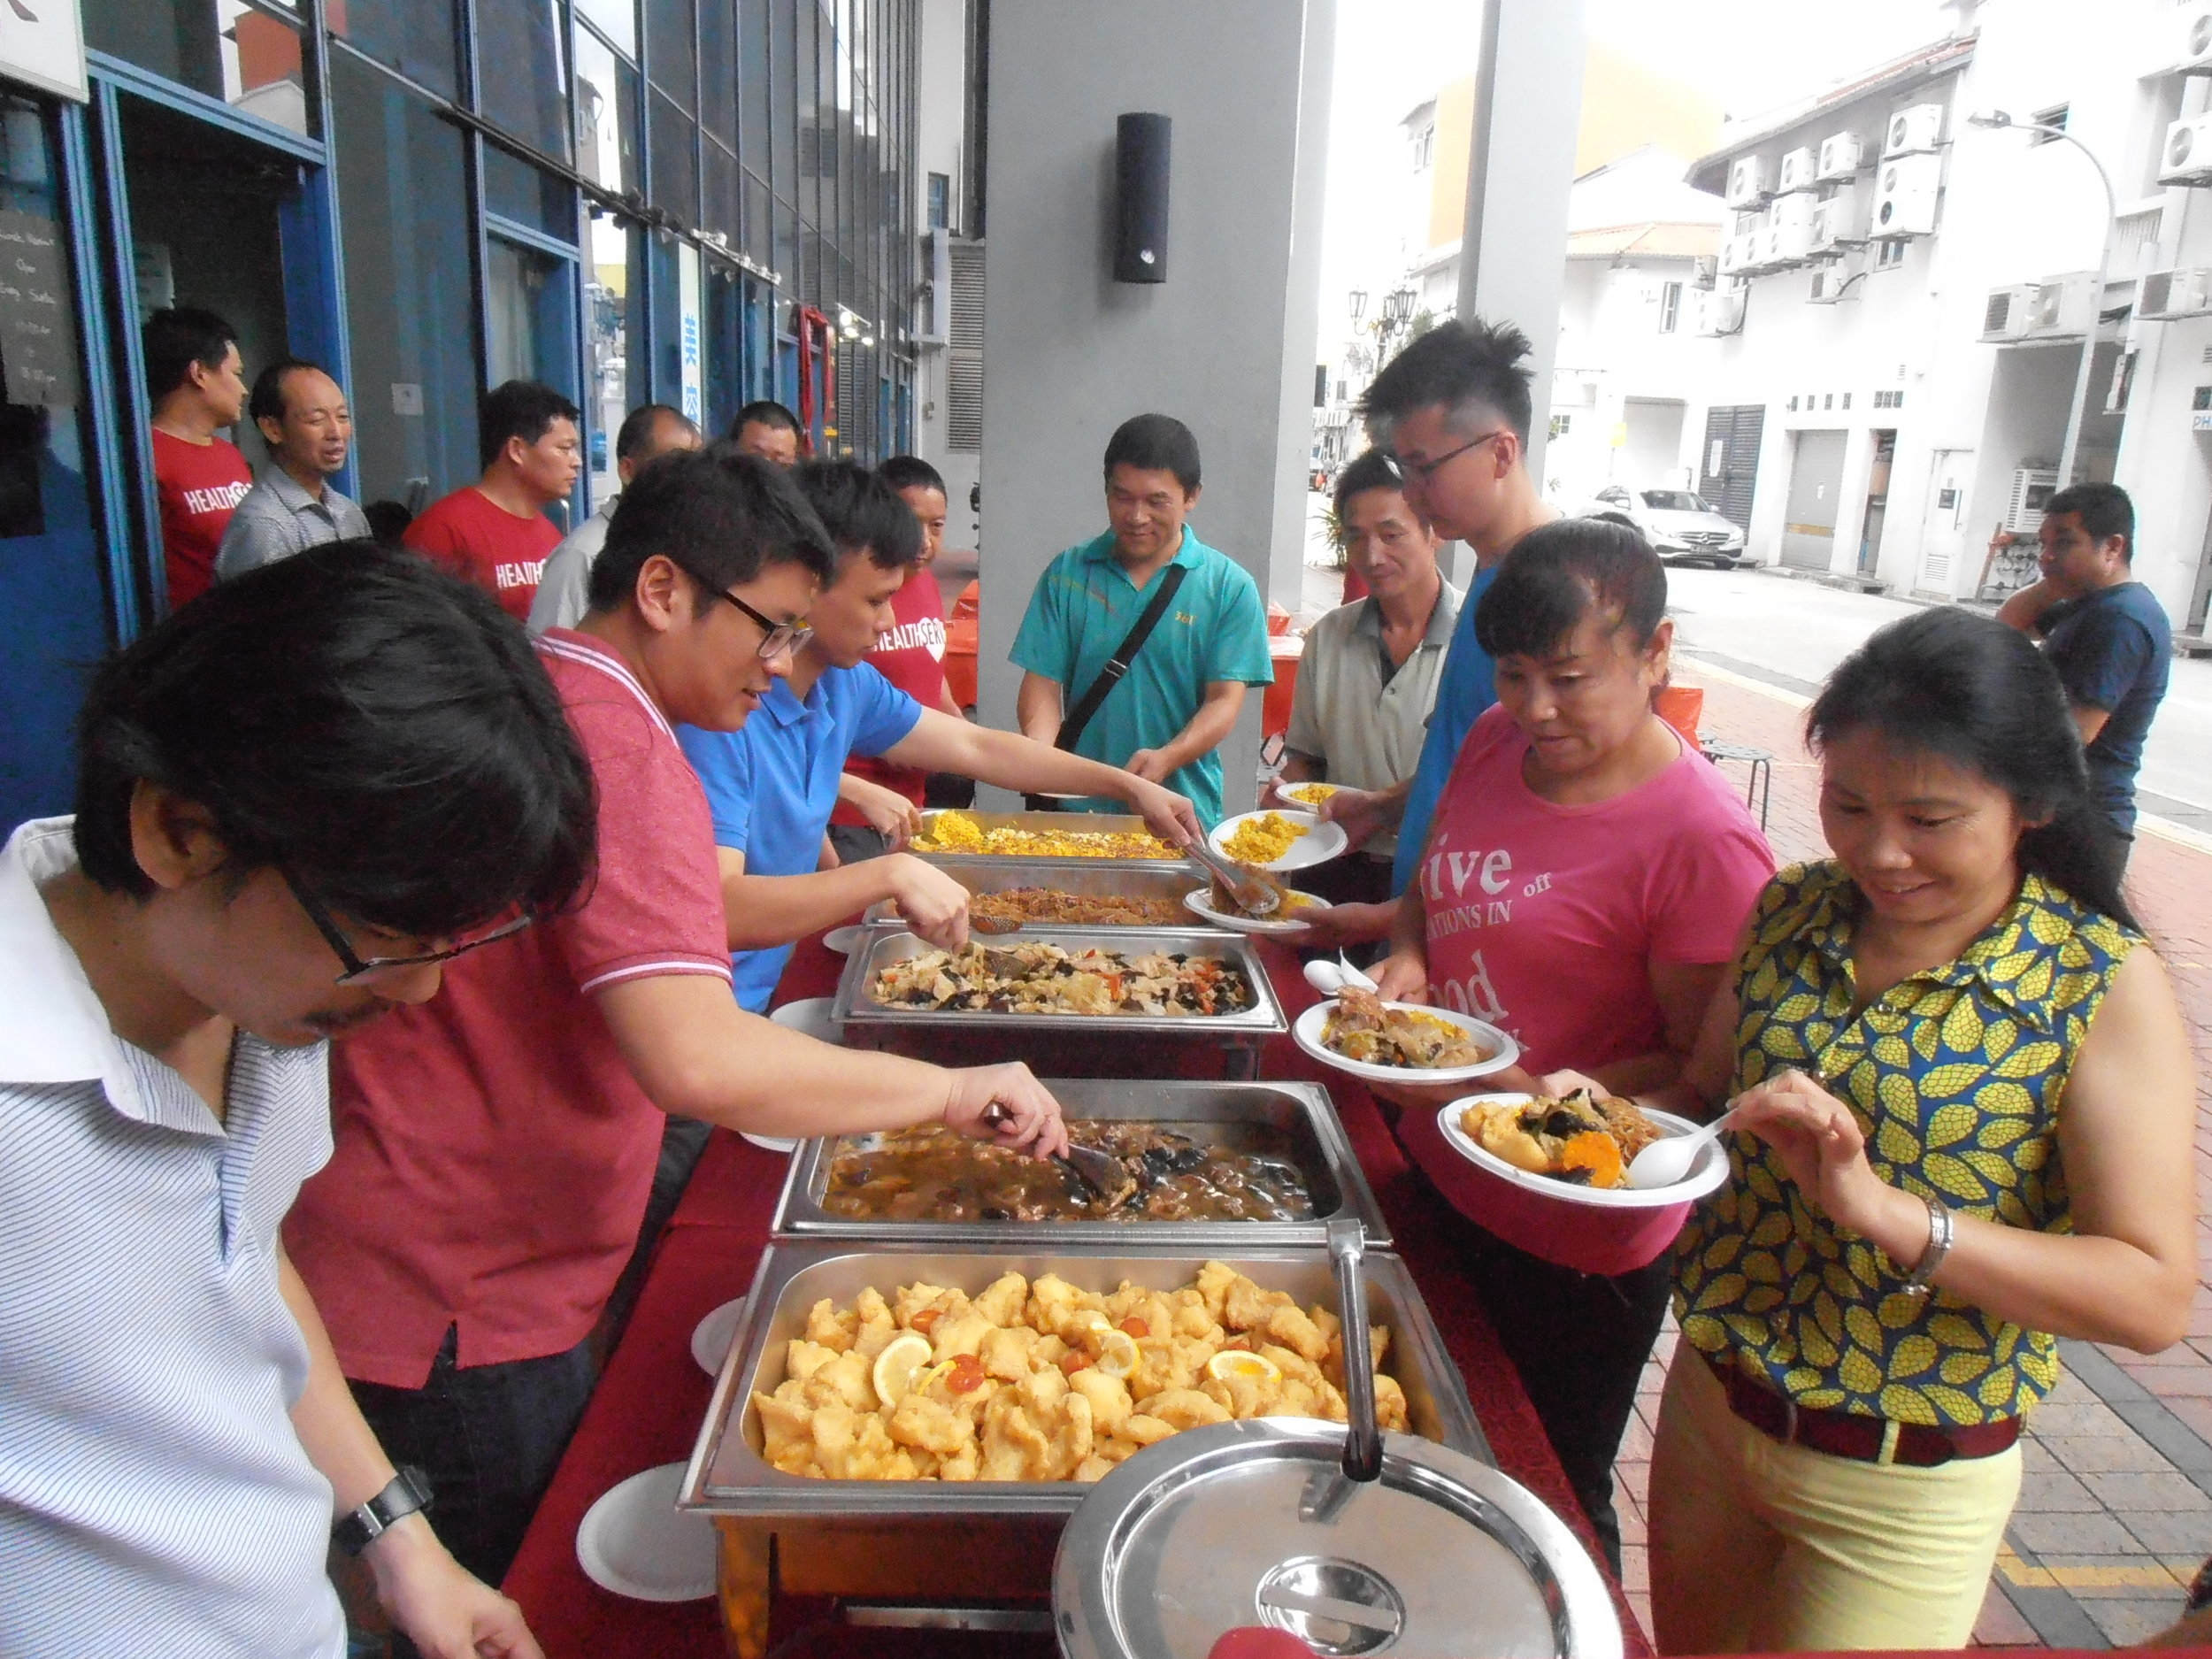 Celebrating Chinese New Year with the migrant worker community